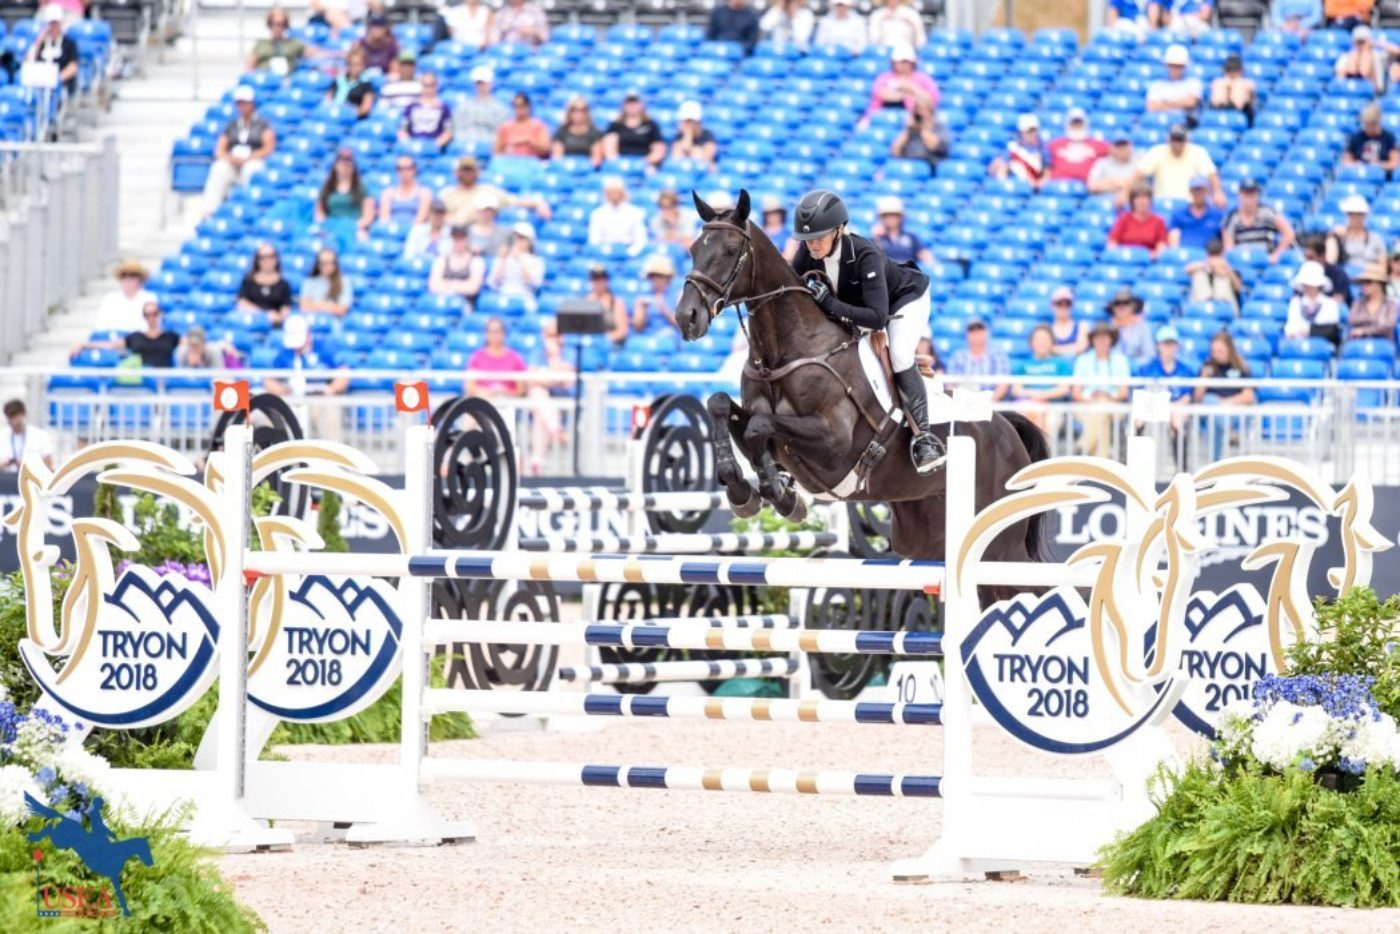 19th - Jonelle Price and Classic Moet (NZL)